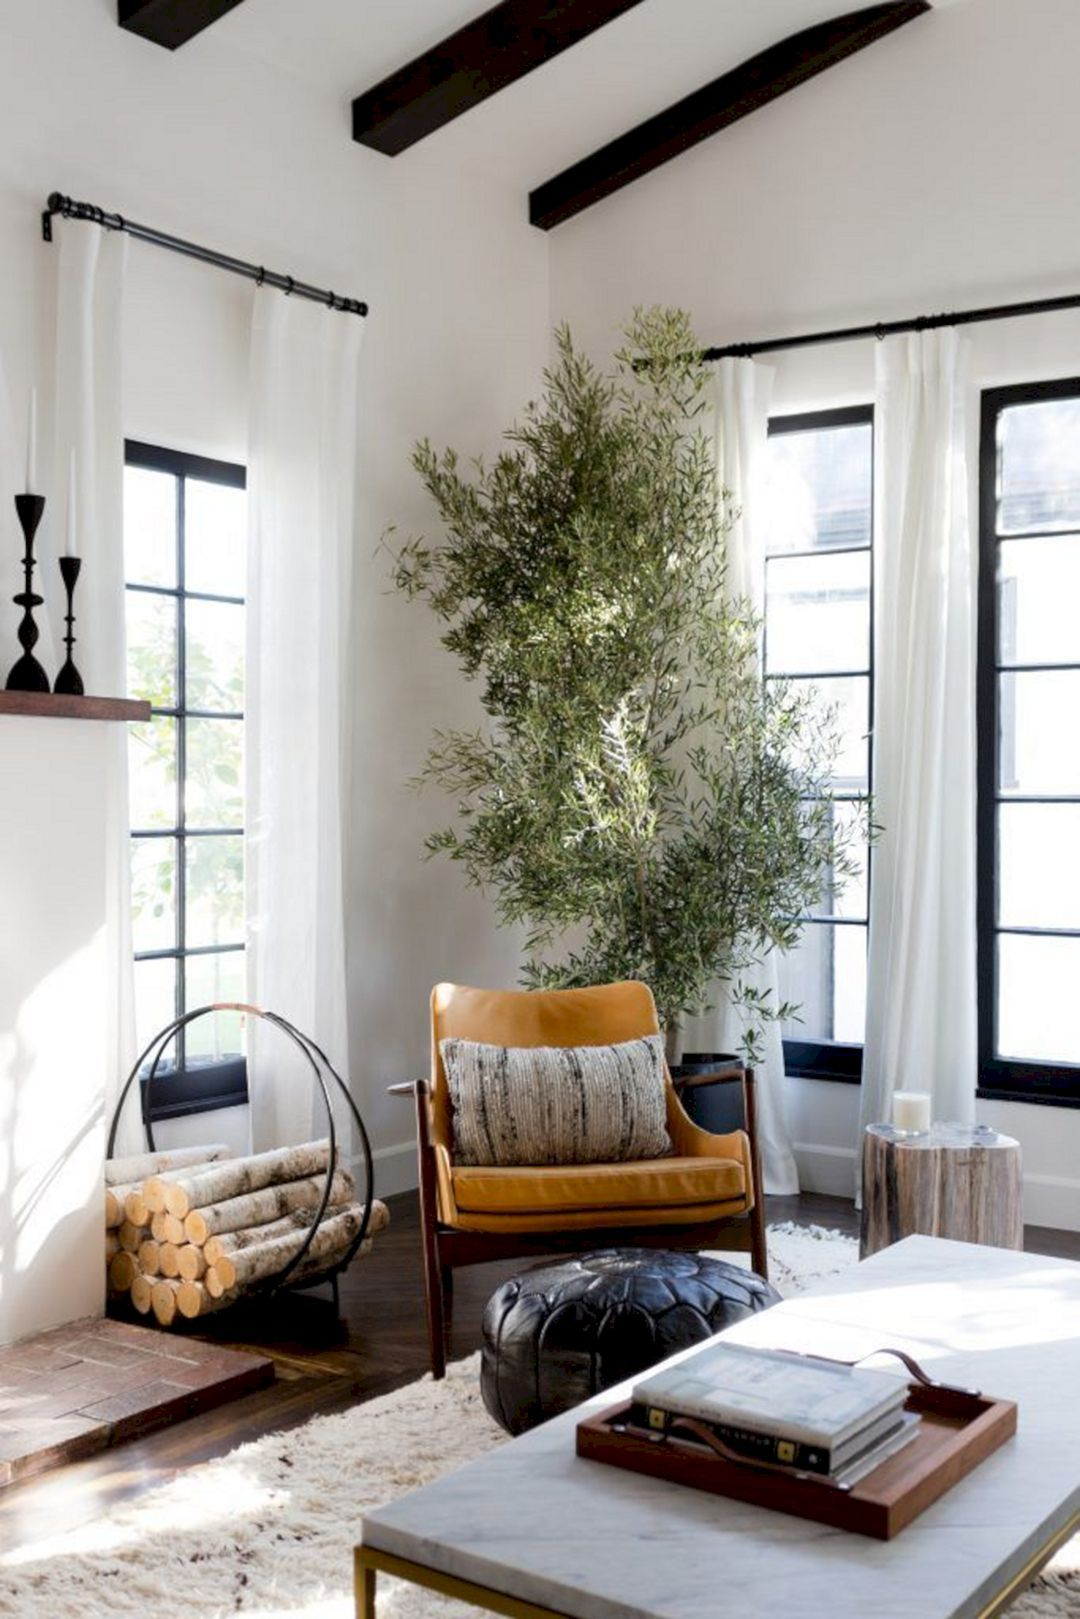 Home decorating ideas living room tree in living room black window frames log holder mid century arm chair cof